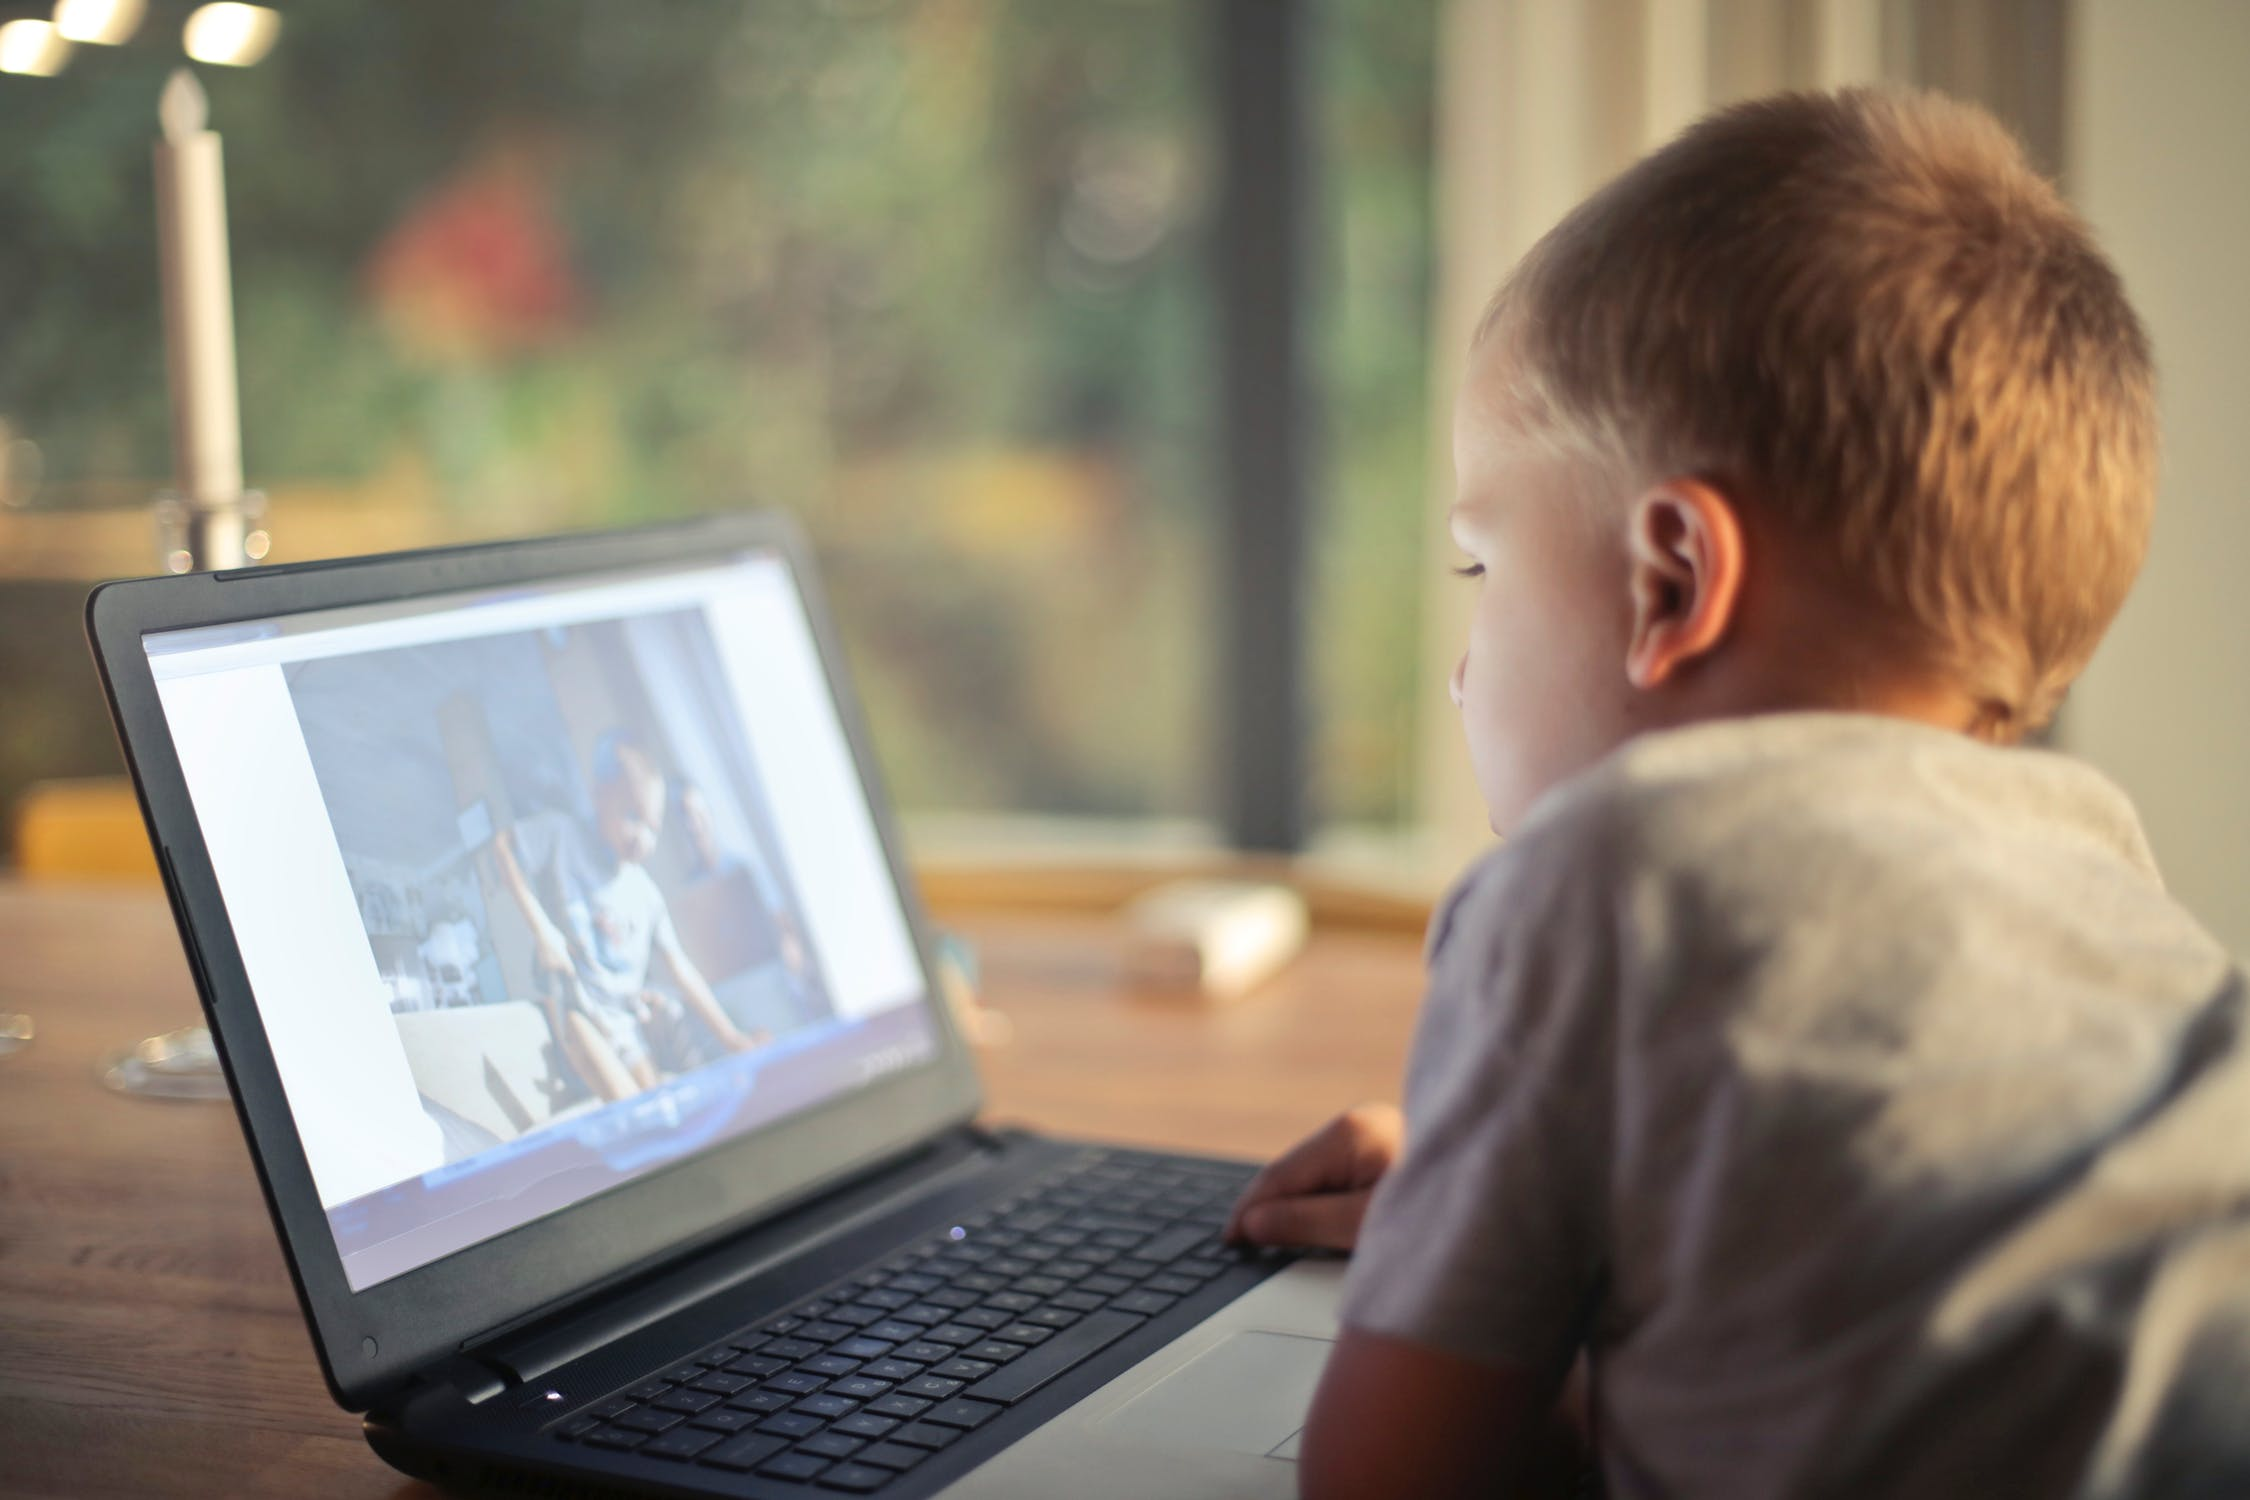 How to Reduce Screen Time for Your Child